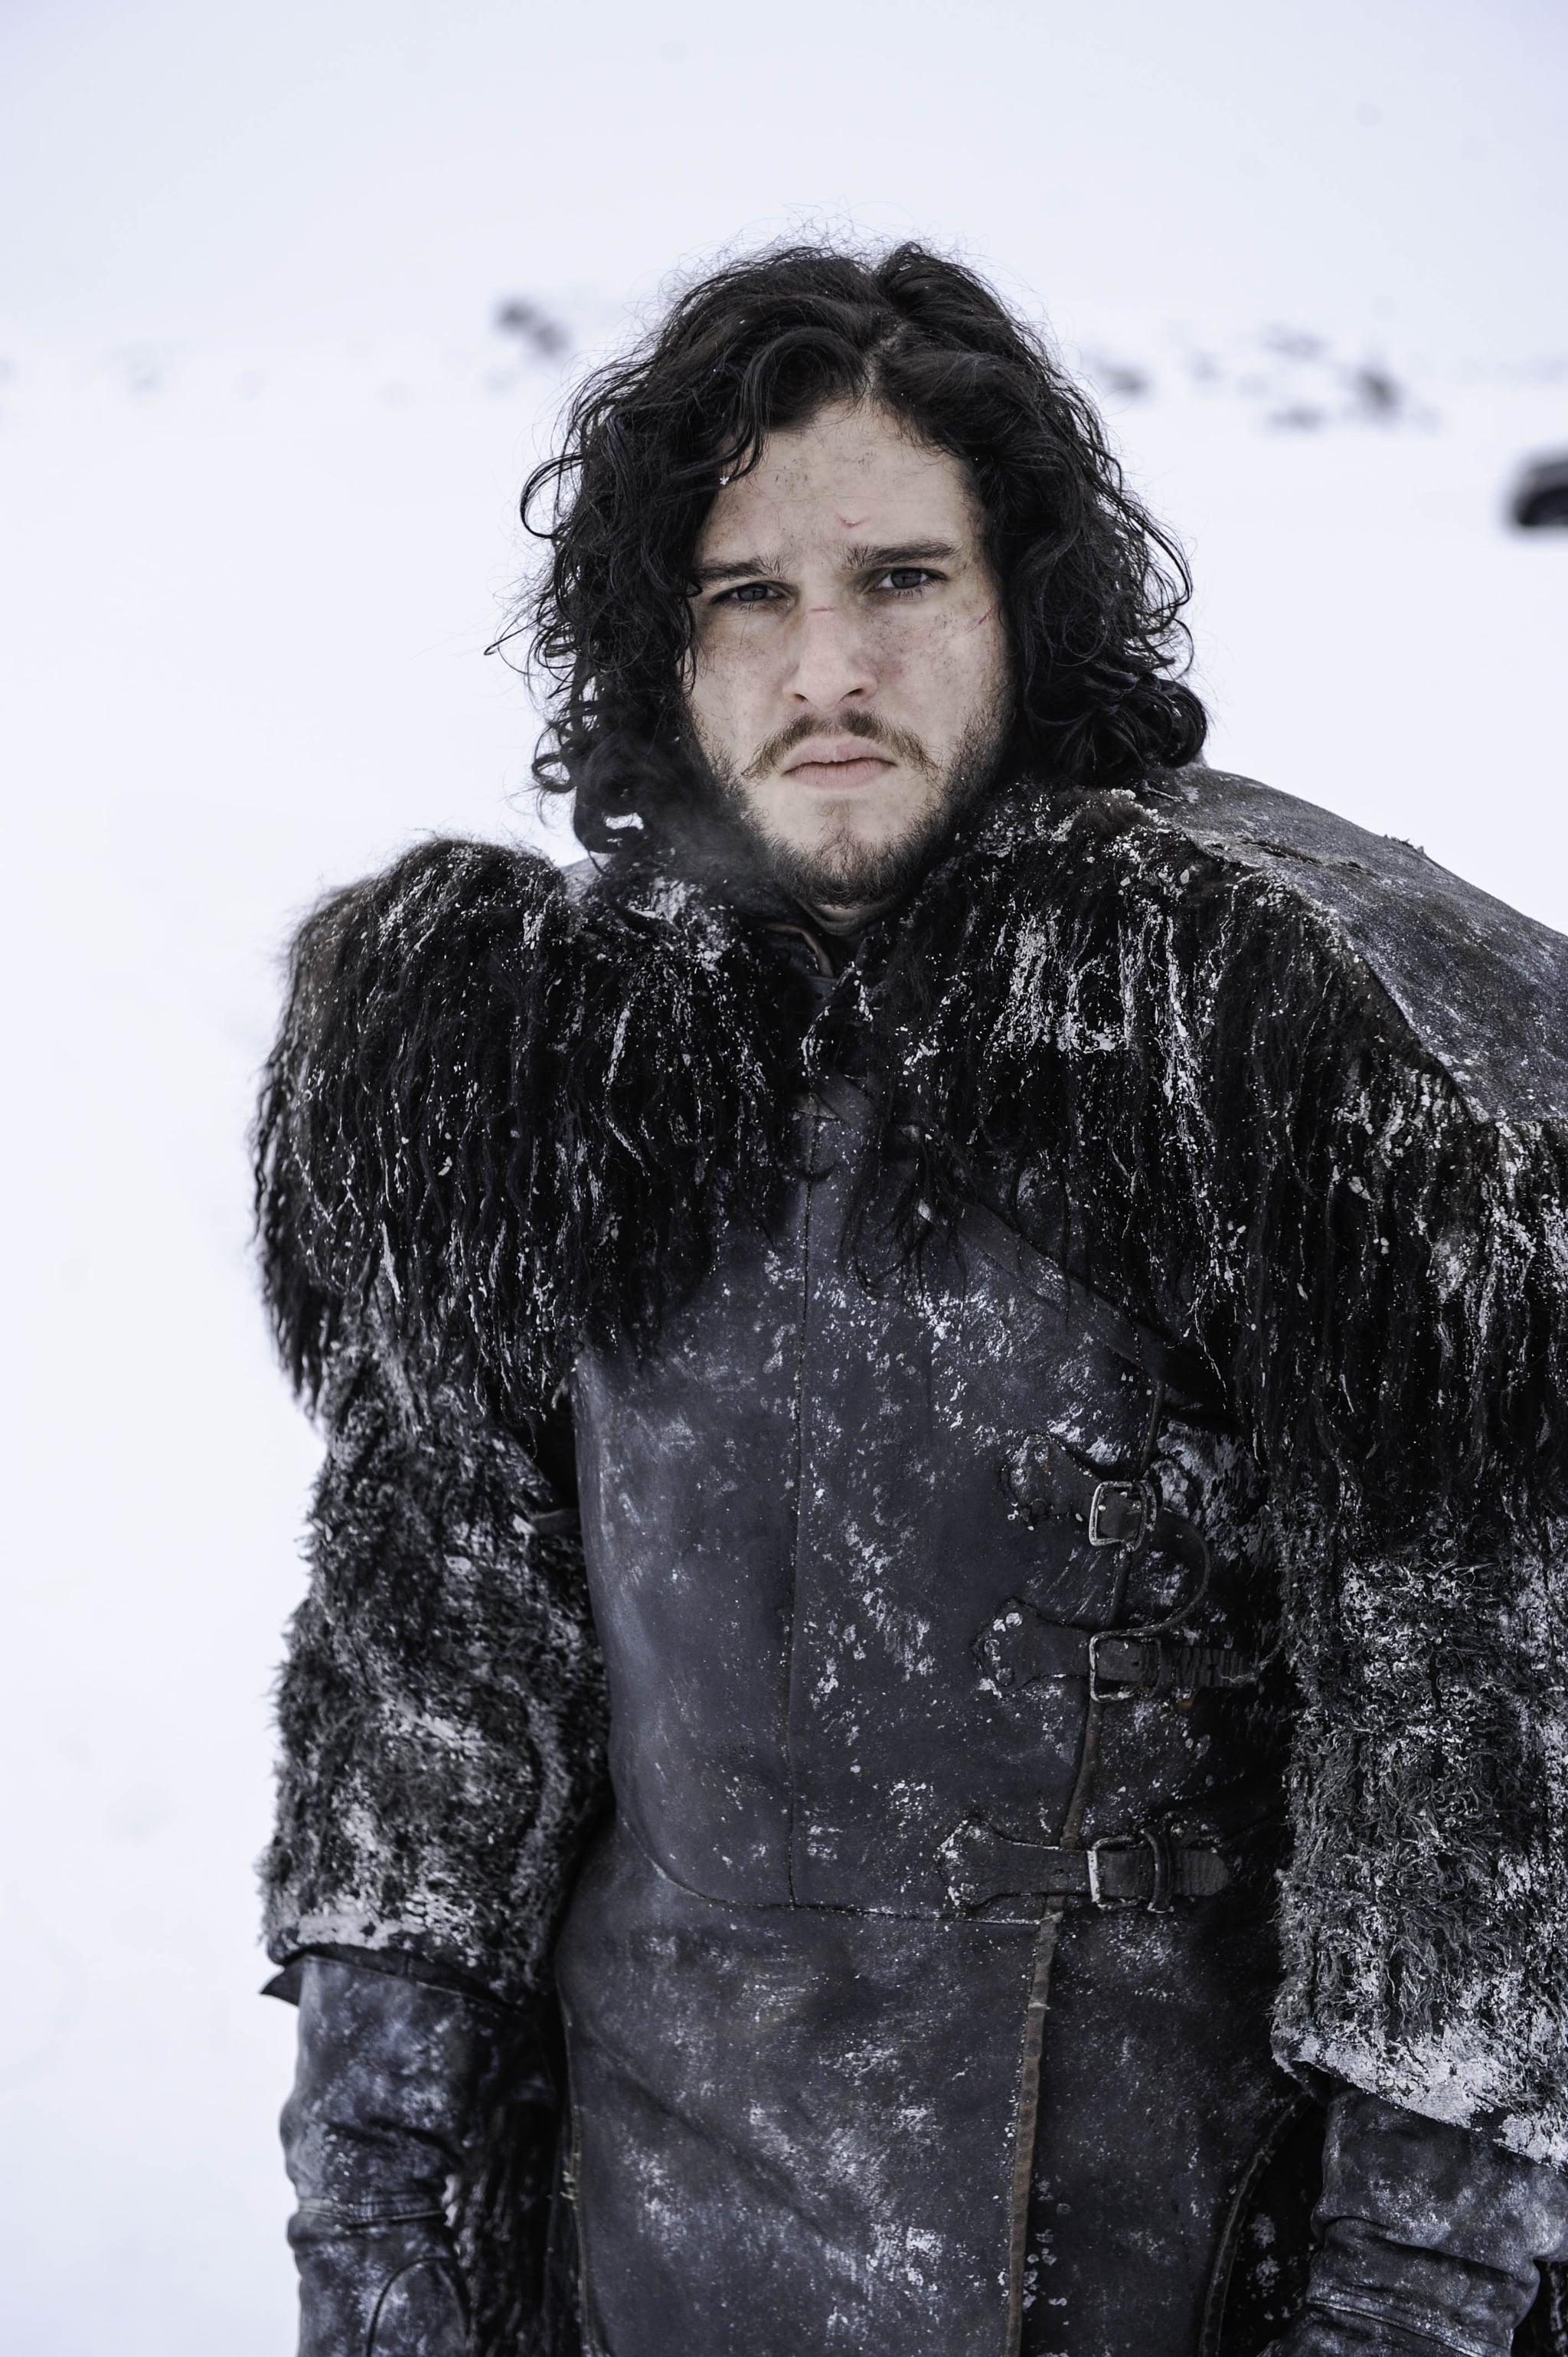 And his character Jon Snow is always really broody. As in, zero smiling.